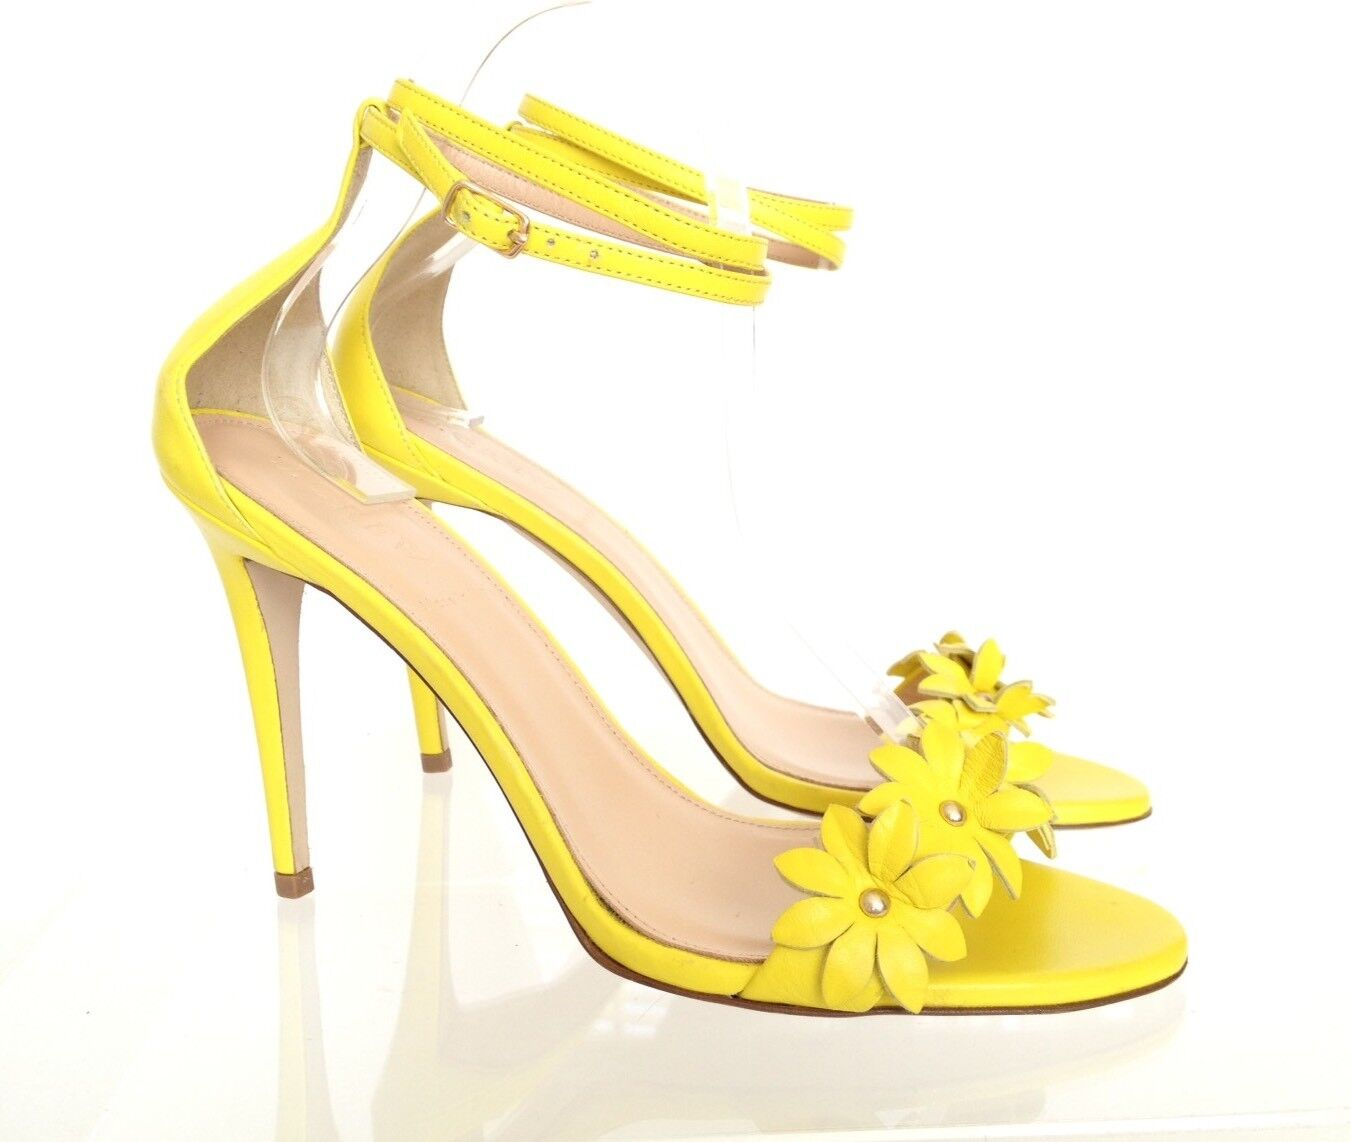 J.CREW Leather Flower High Heel Ankle Strap Sandals 7 Lemon Sorbet Yellow  278